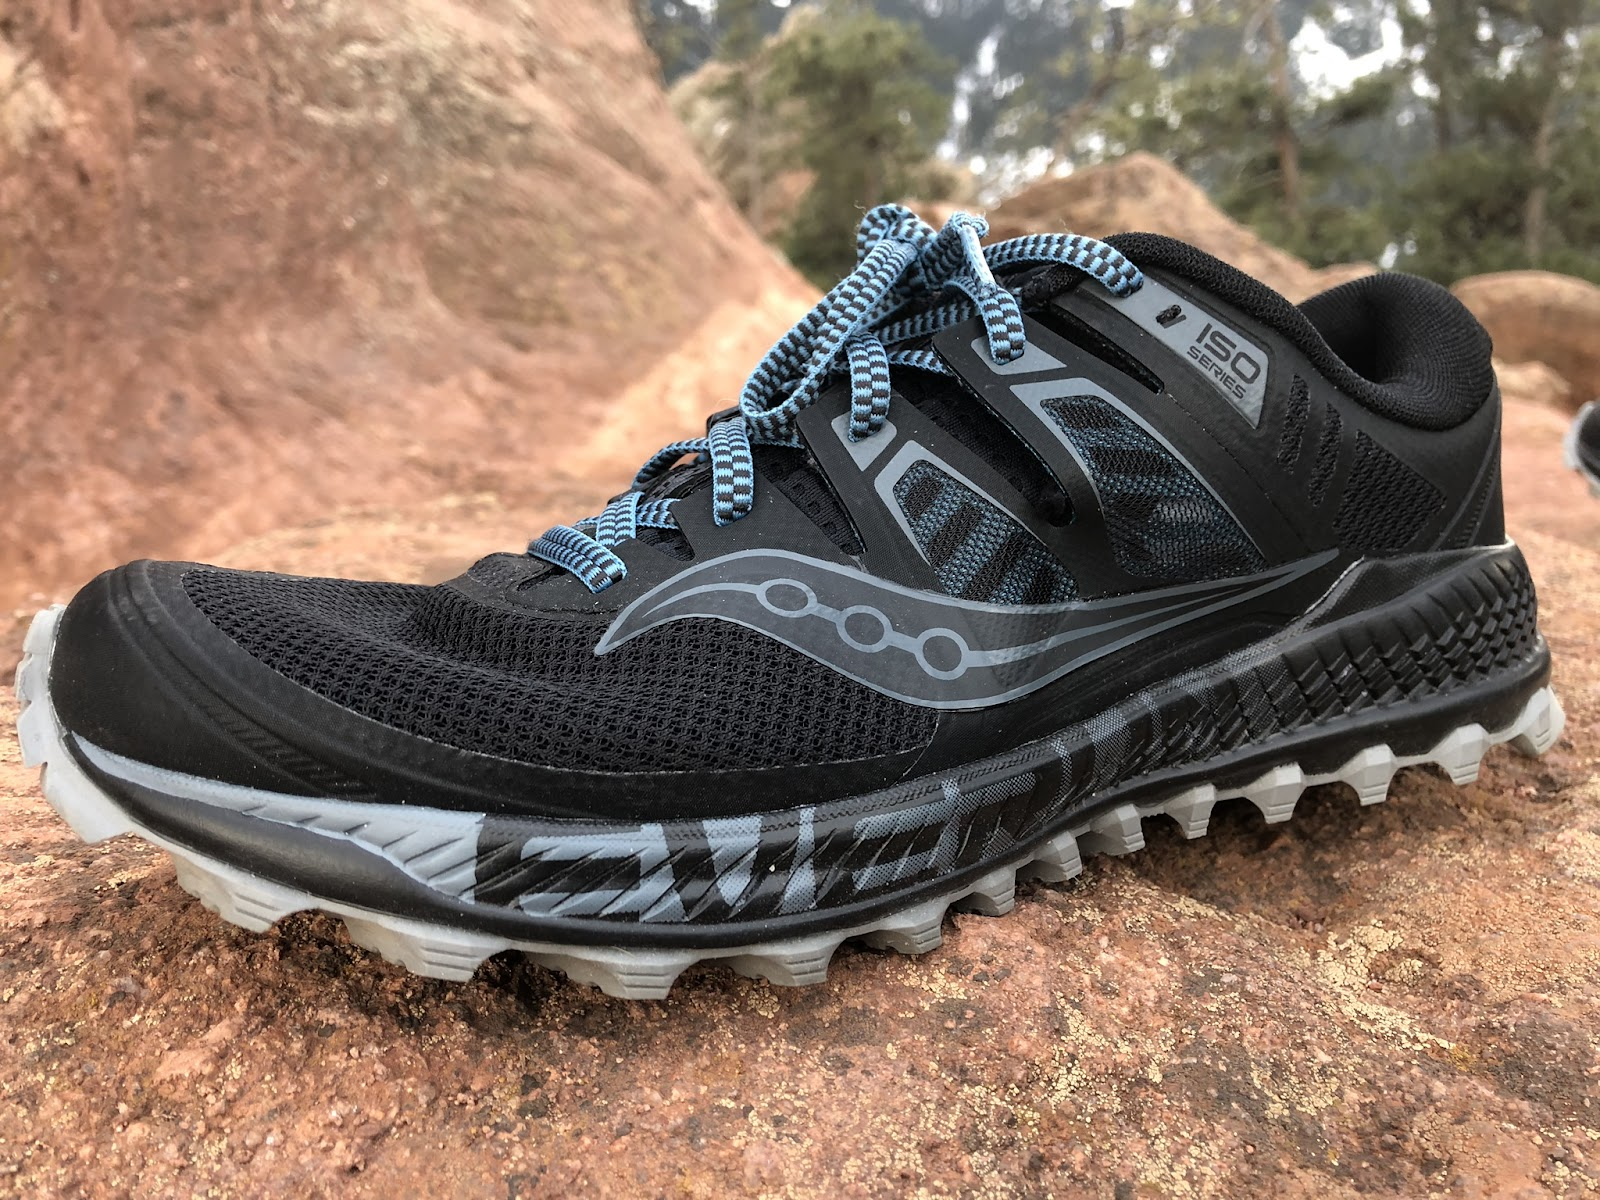 b995b739dc2 Saucony Peregrine ISO Review  Regardless of Terrain- Confidence Inspiring